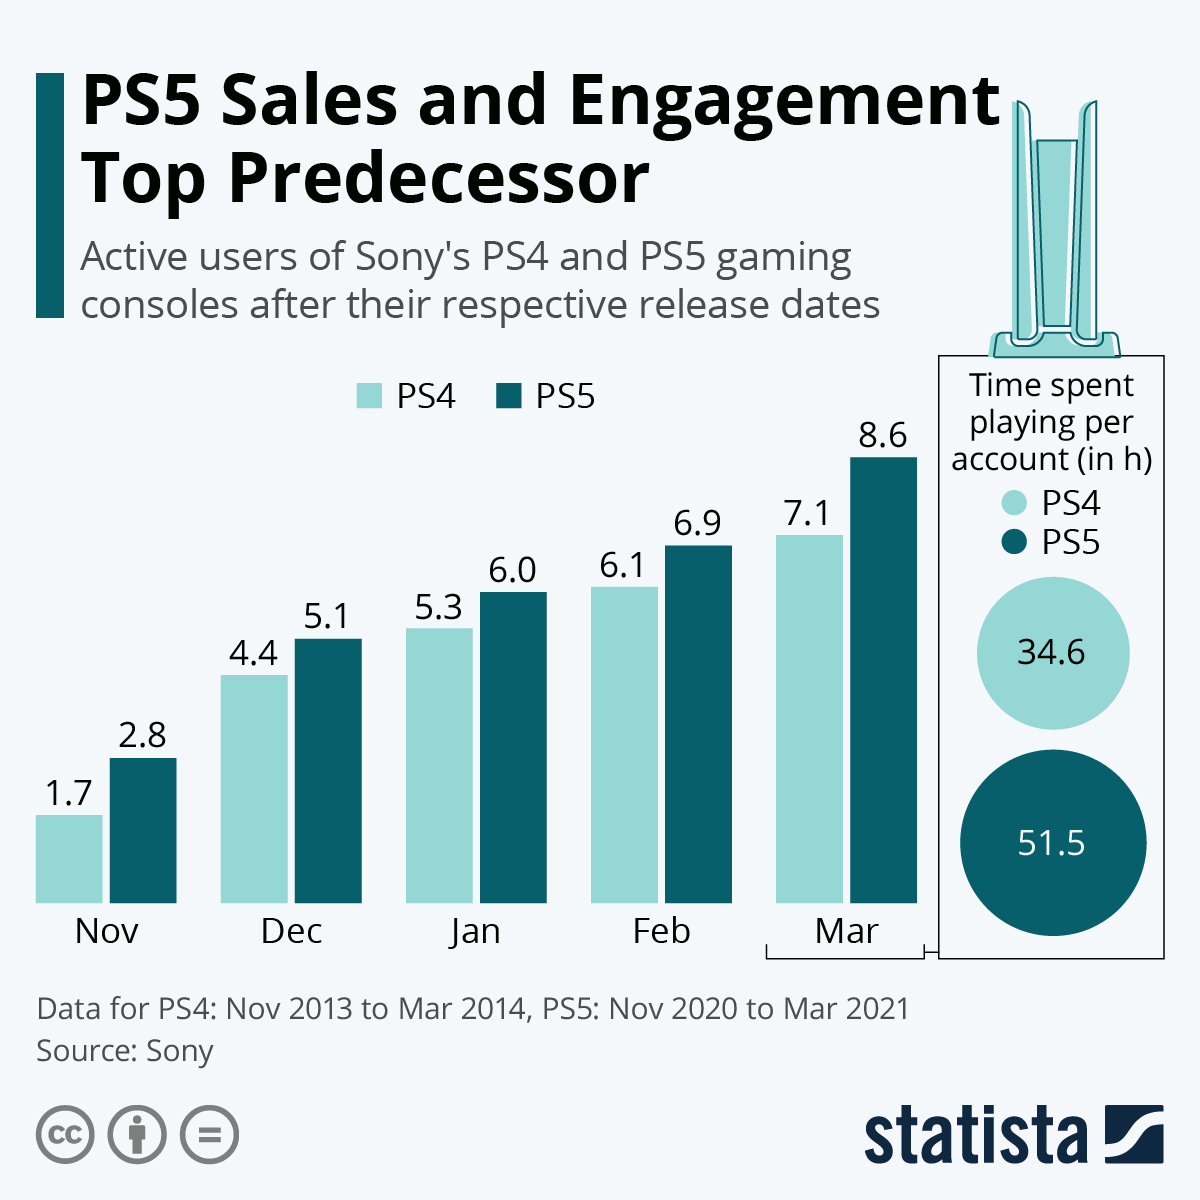 Sony's PS5 is beating its predecessor